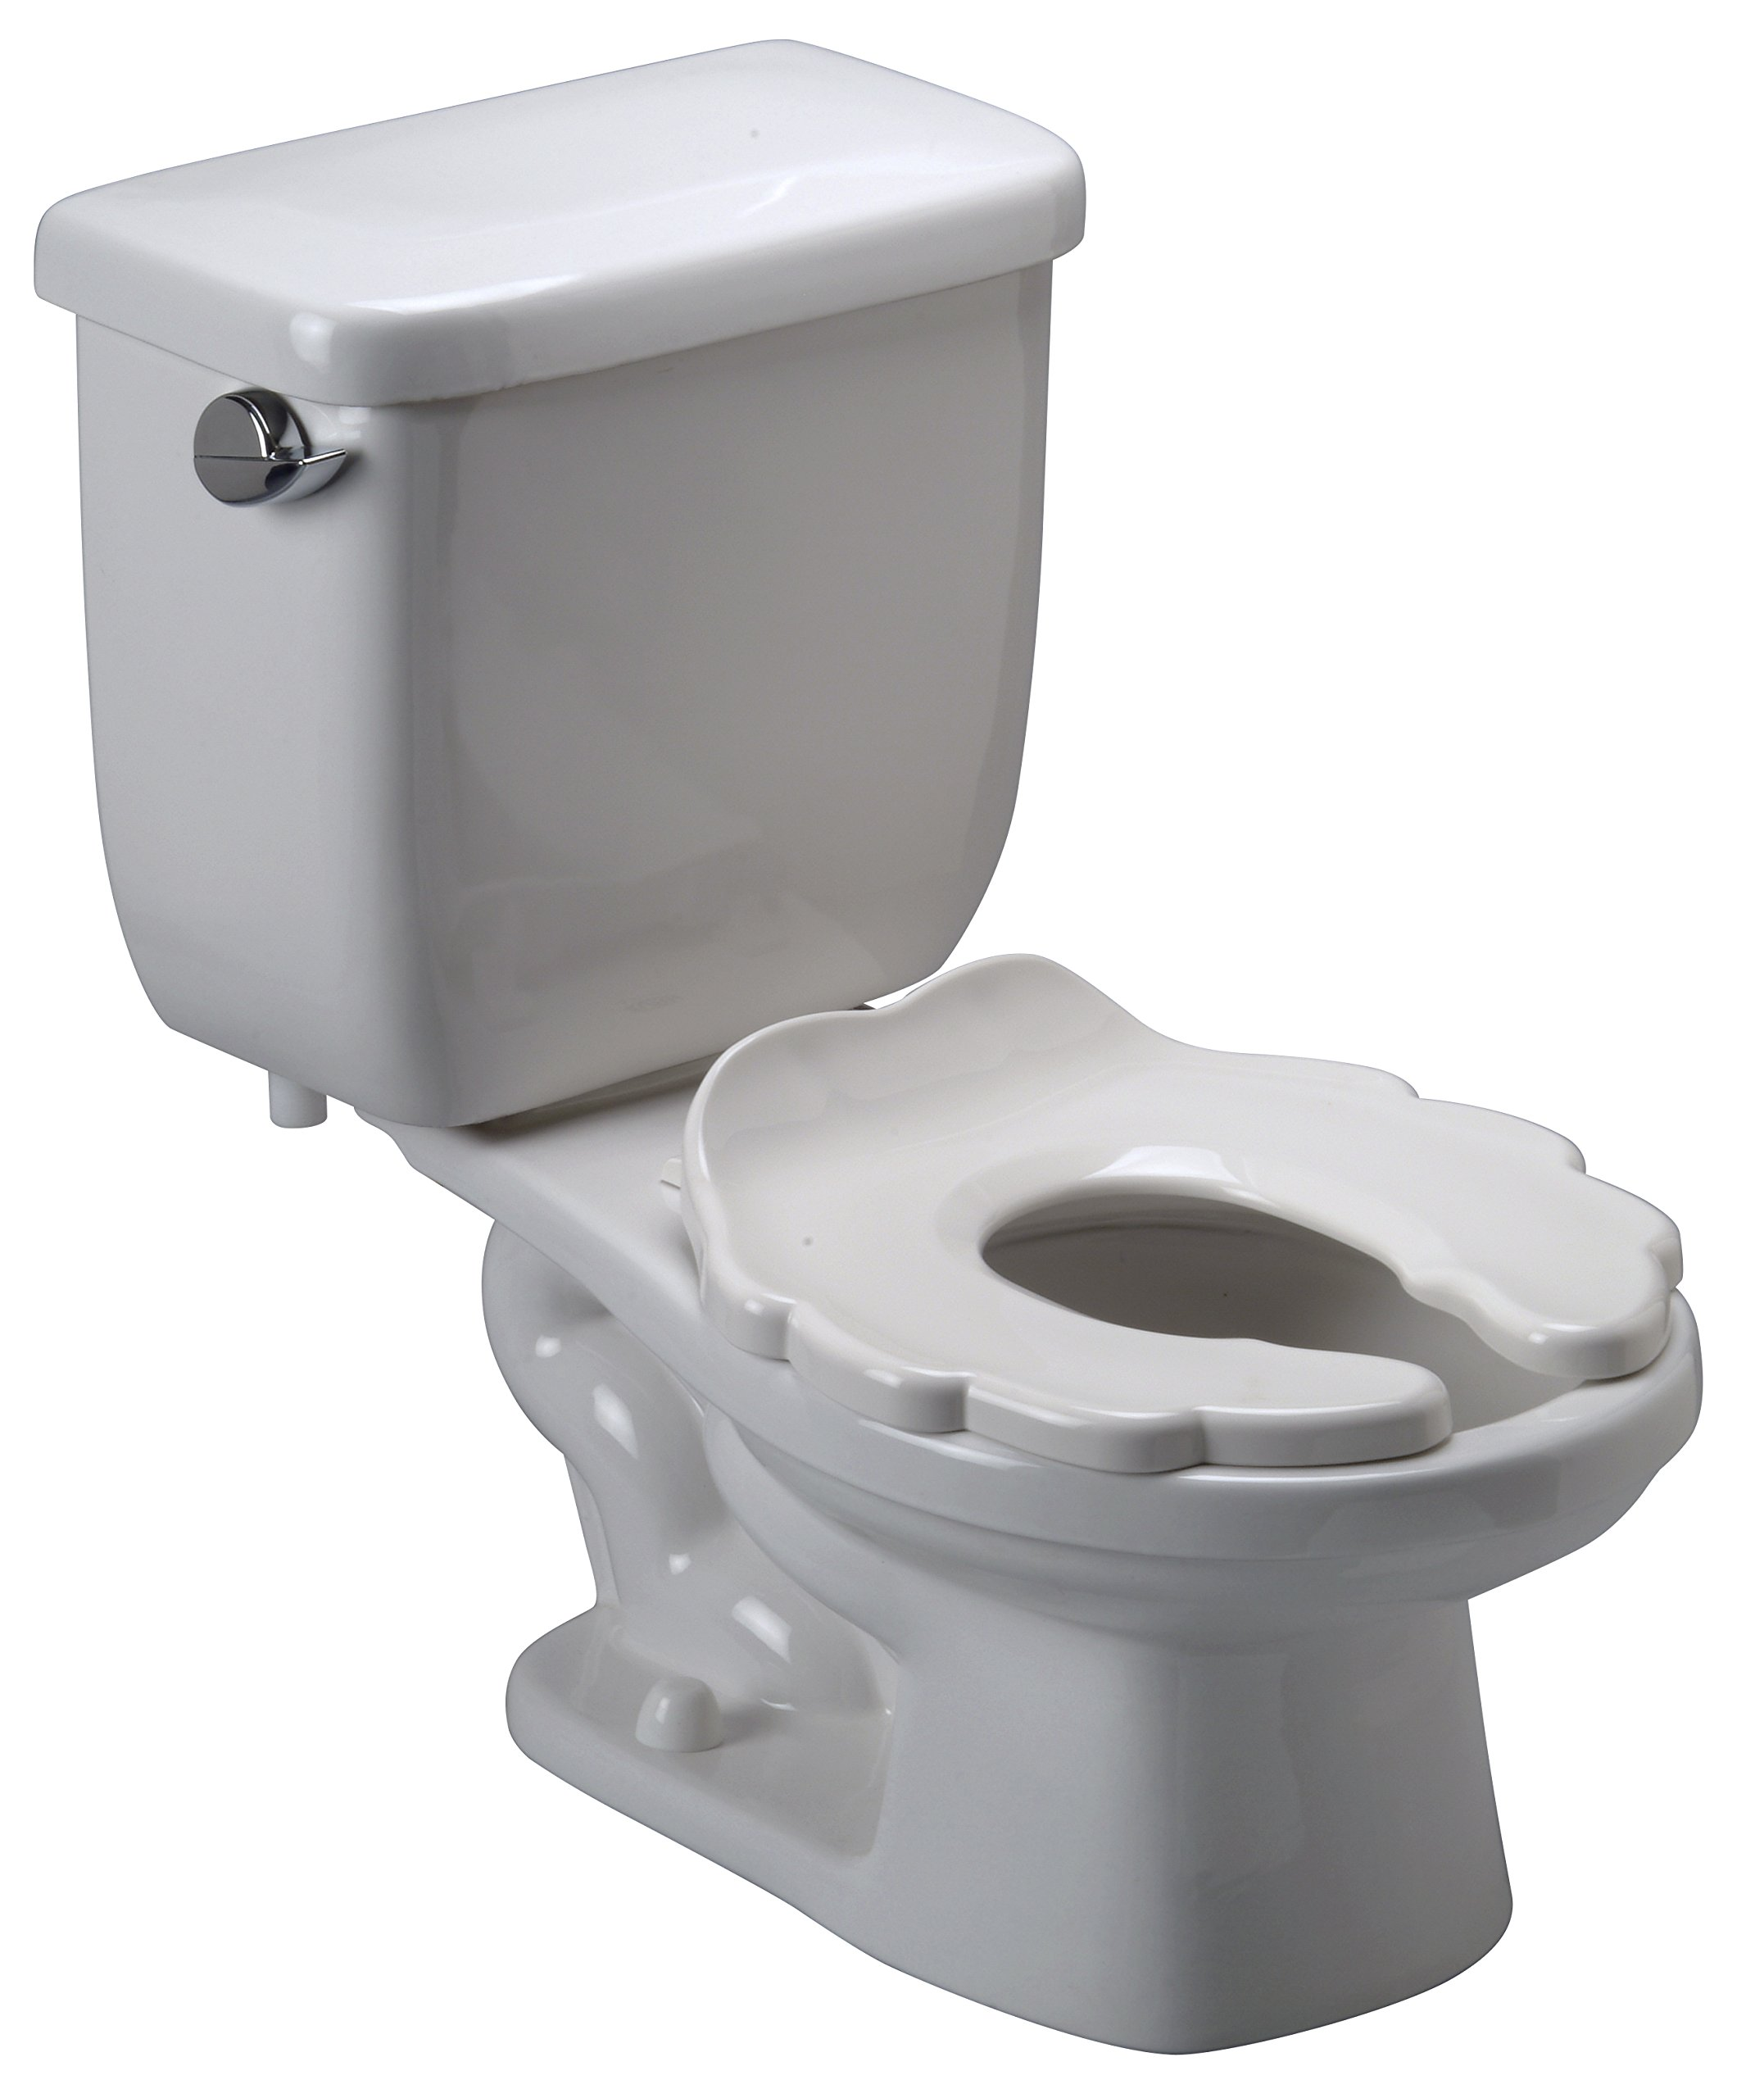 Zurn Z5590 Children's 1.6 gpf Two-Piece Toilet